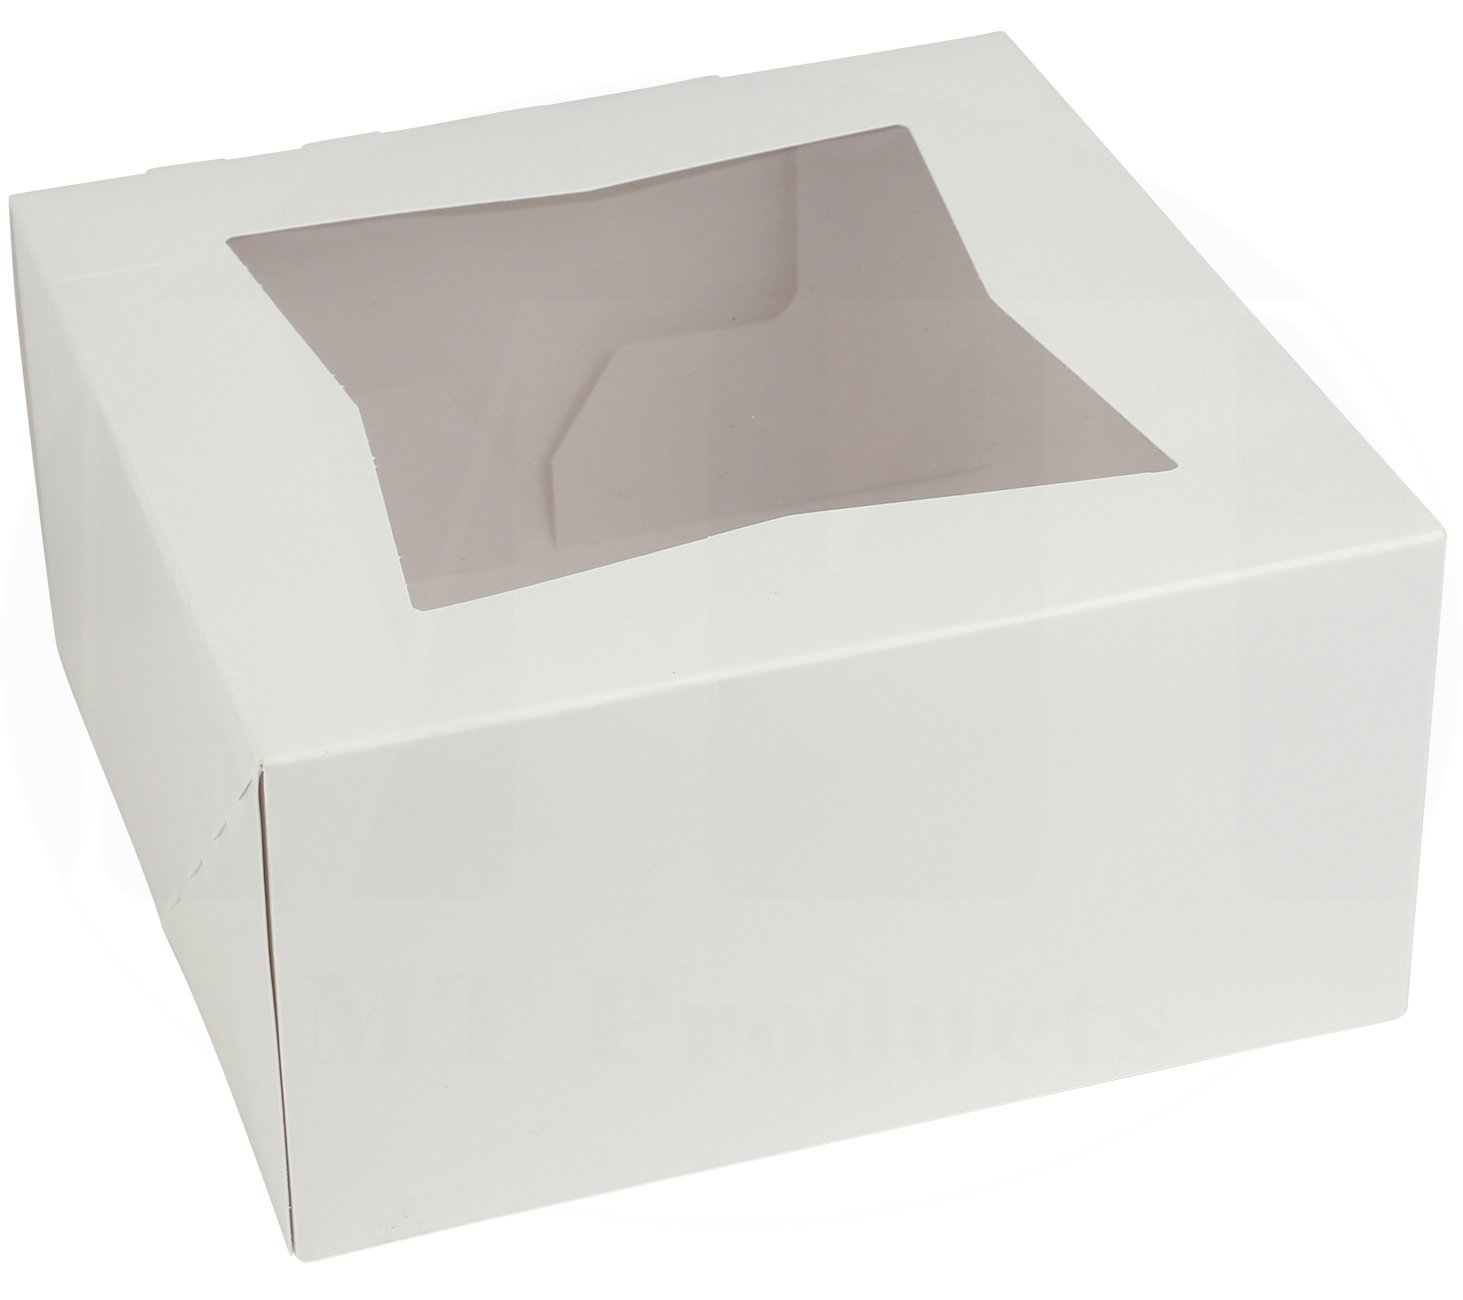 6'' Length x 6'' Width x 3'' Height White Paperboard Auto-Popup Window Small Pie/Bakery Box by MT Products (Pack of 15)